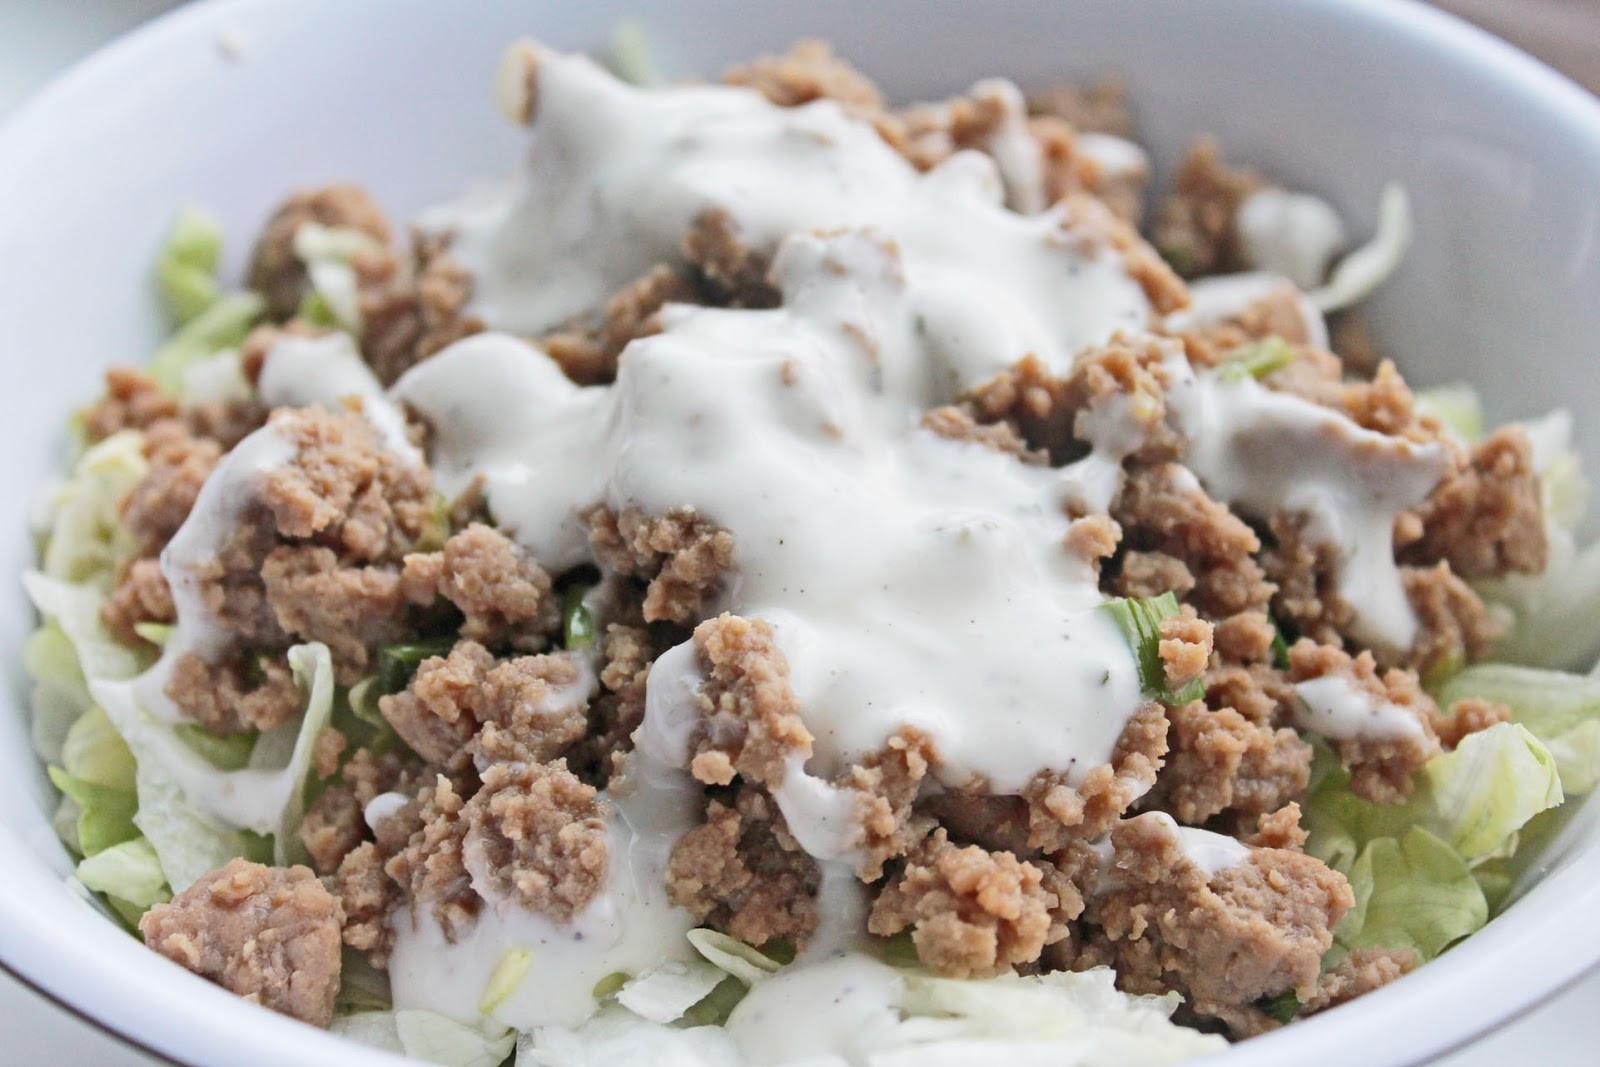 Healthy Dinner Recipes With Ground Turkey  Healthy Dinner Recipe Ground Turkey Stir Fry Lettuce